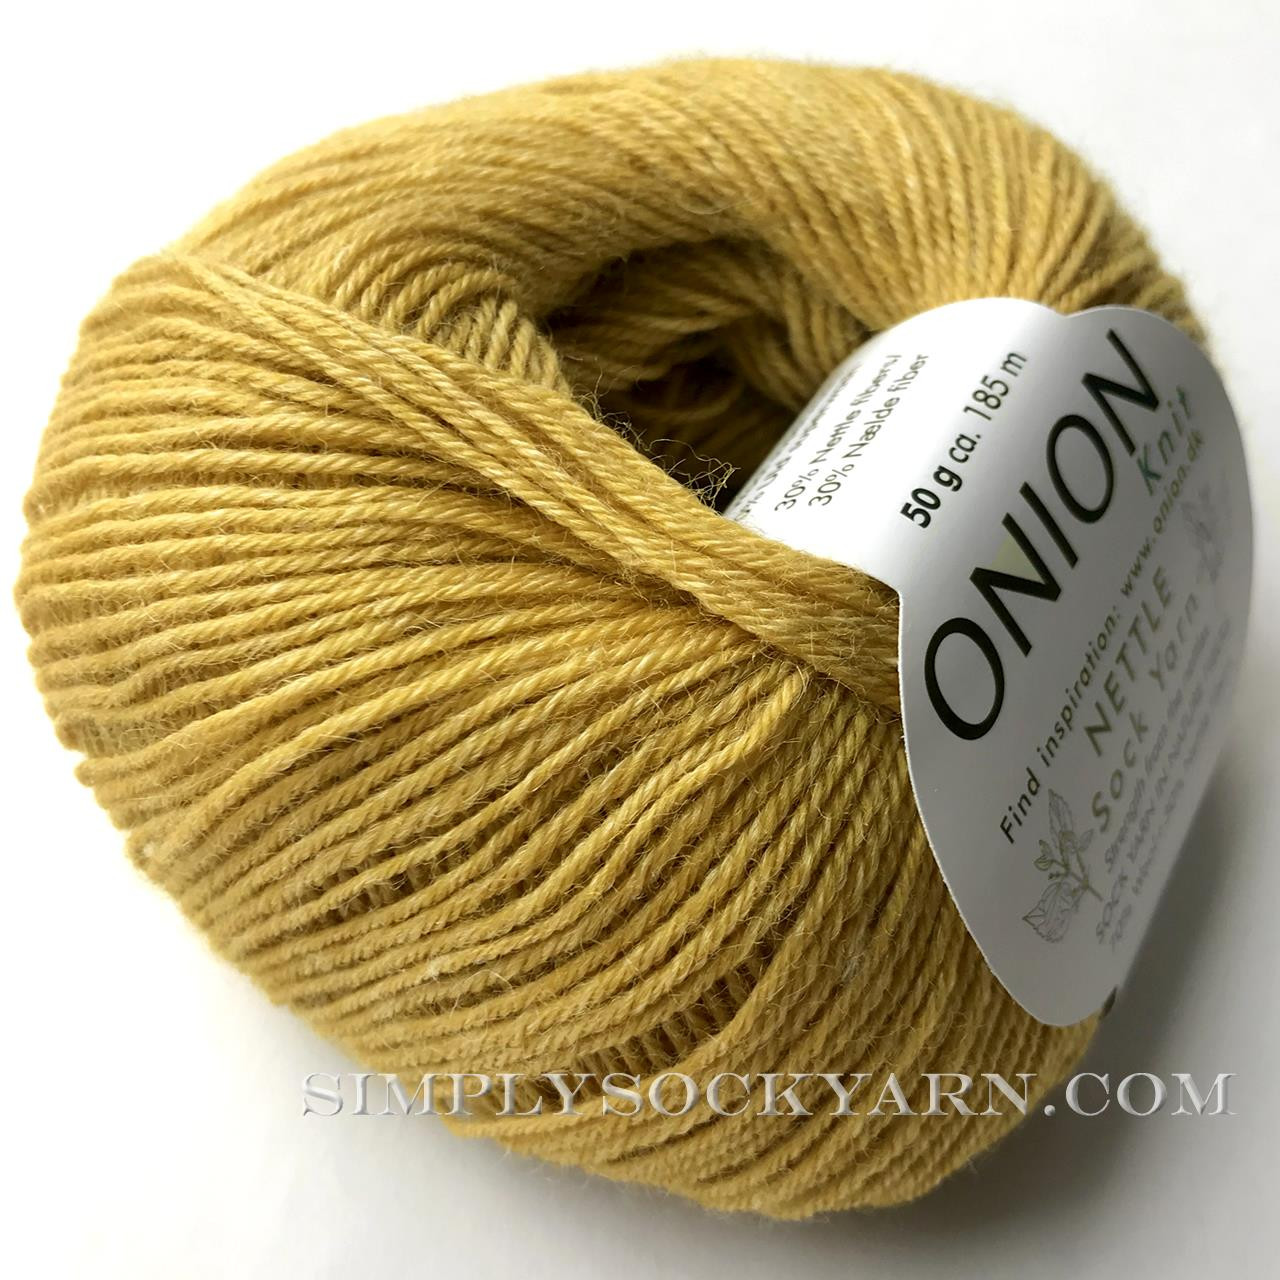 OY Nettle Sock 1016 Curry -